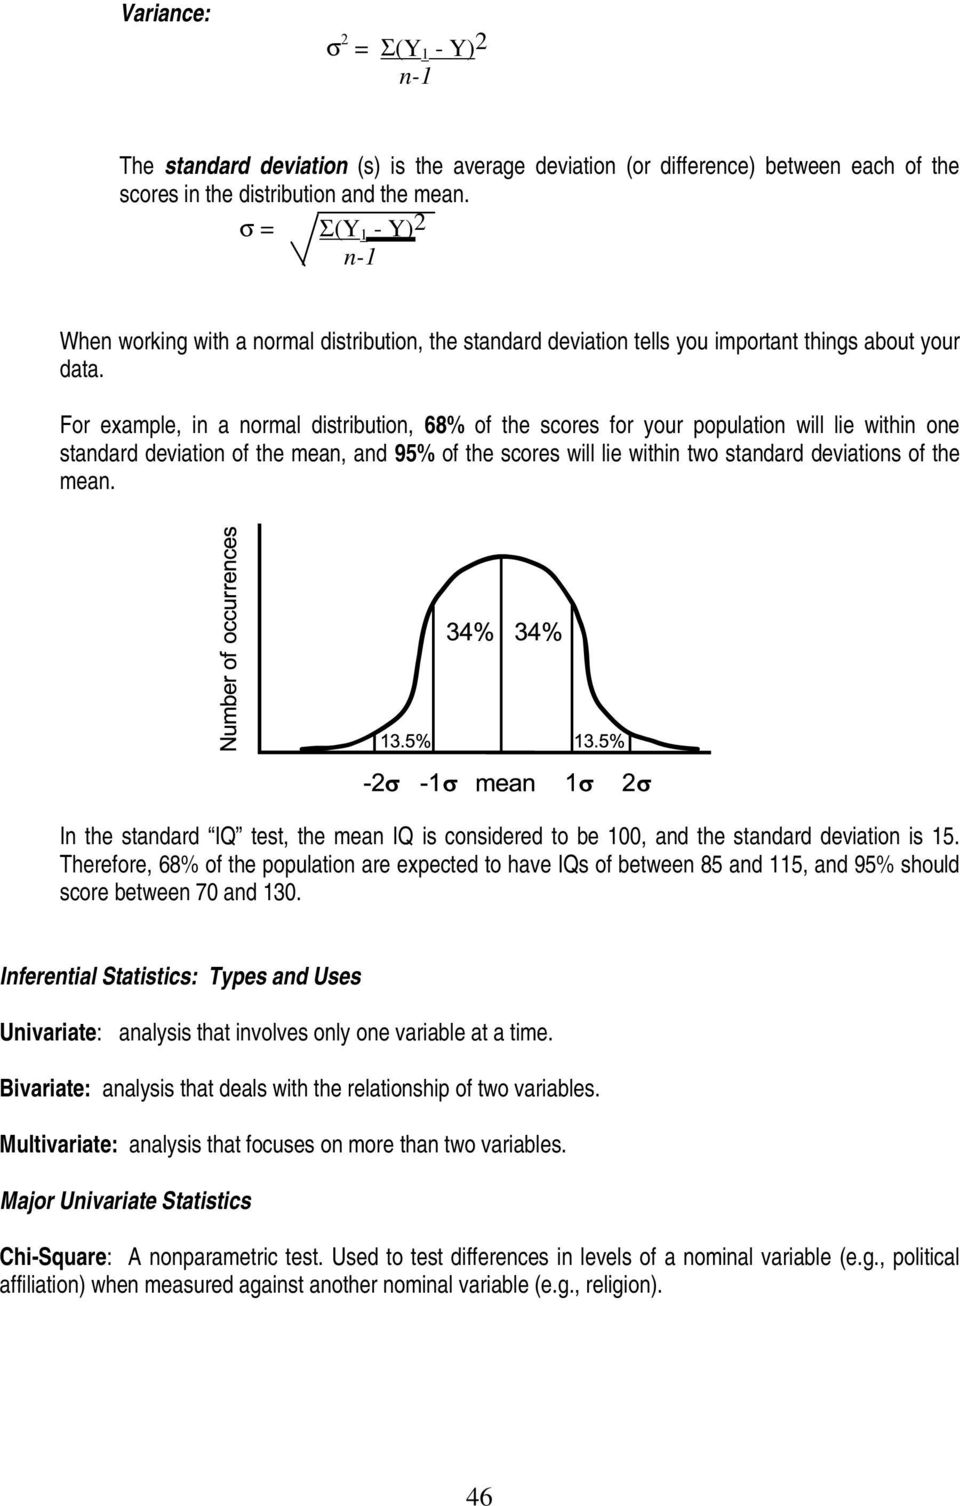 For example, in a normal distribution, 68% of the scores for your population will lie within one standard deviation of the mean, and 95% of the scores will lie within two standard deviations of the